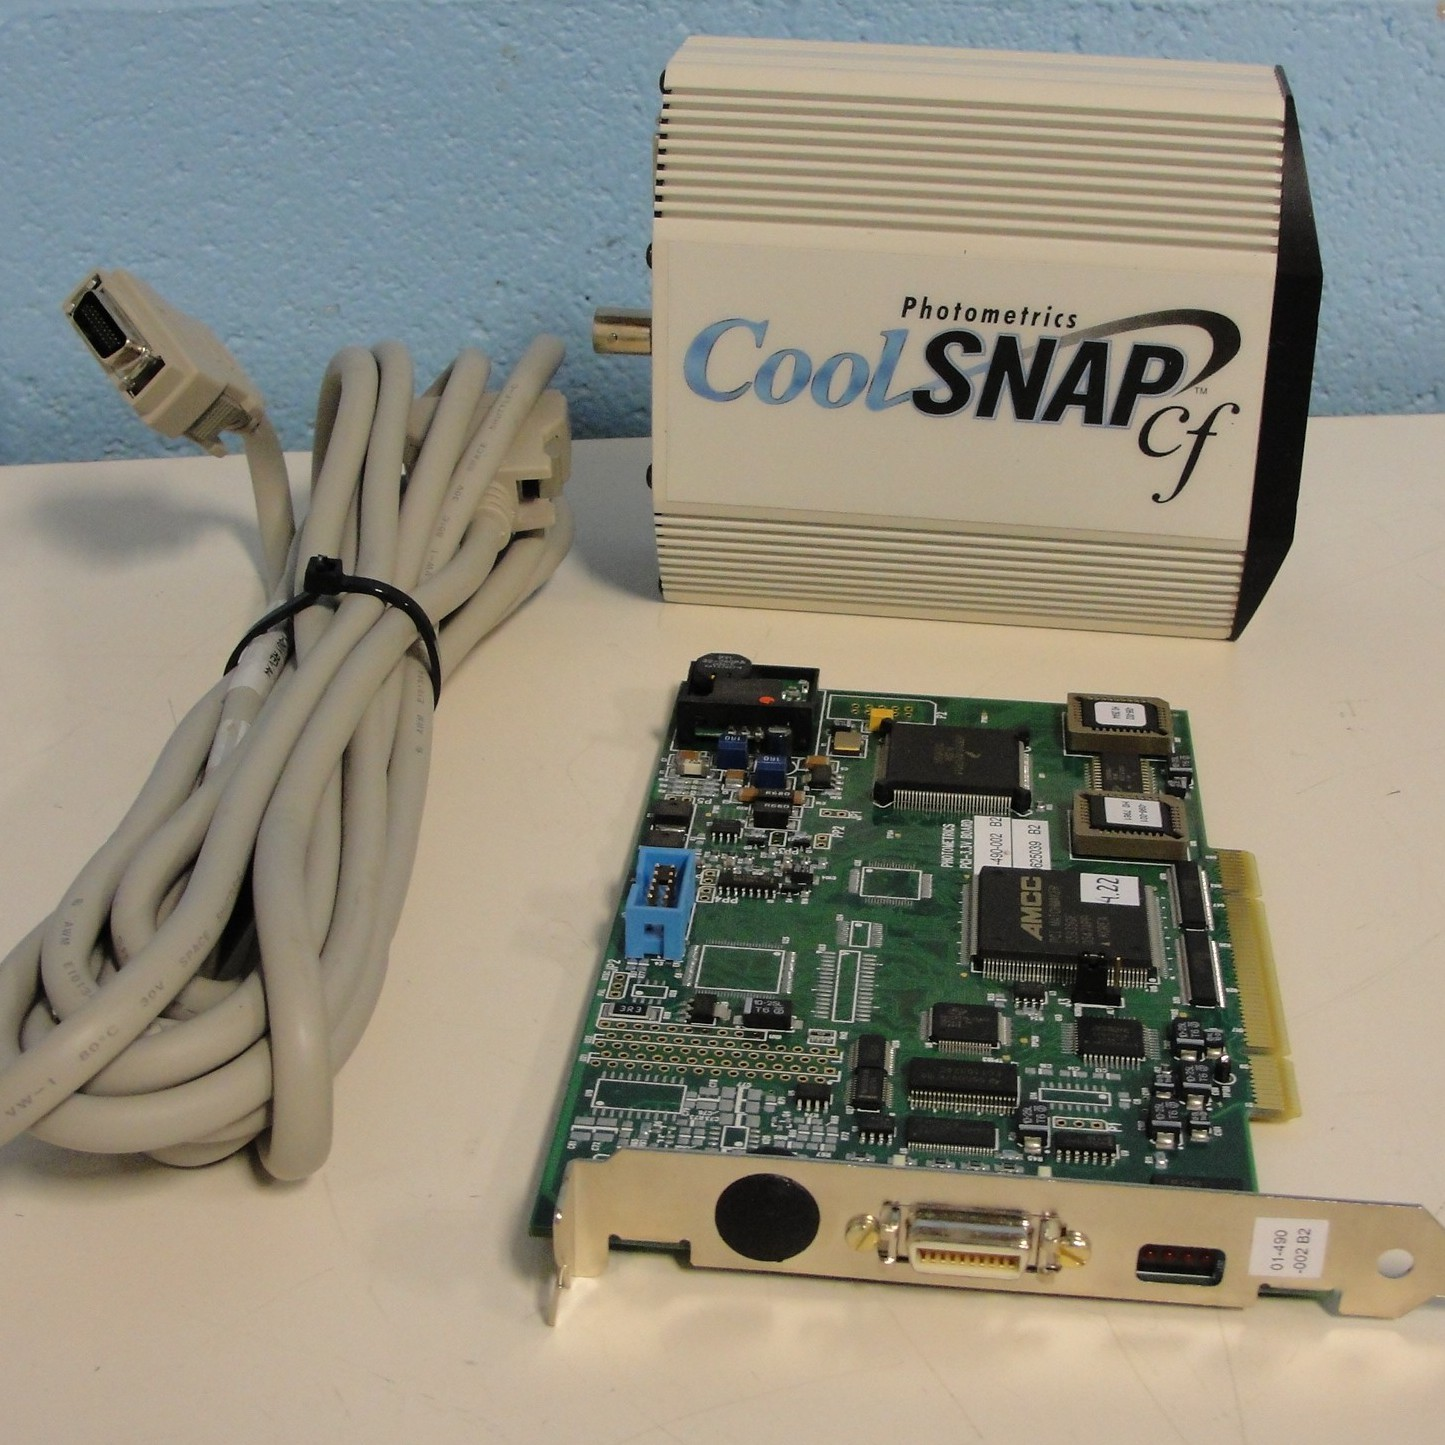 CoolSNAP cf High-Resolution Interline CCD Camera Name